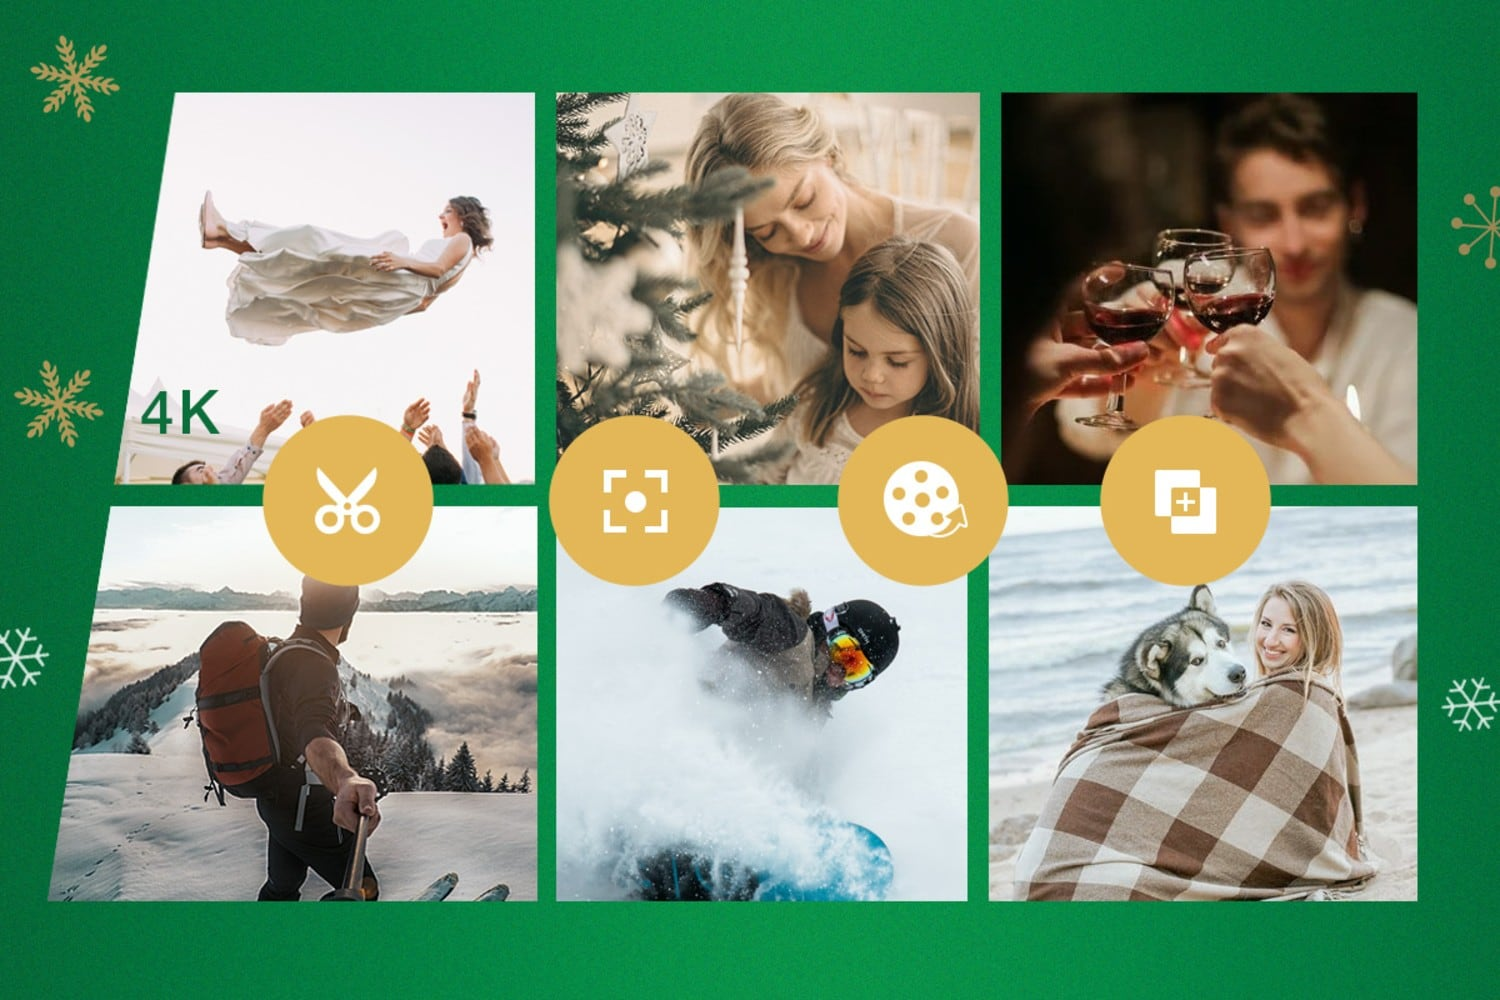 With Digiarty's VideoProc, your video editing tasks are covered.